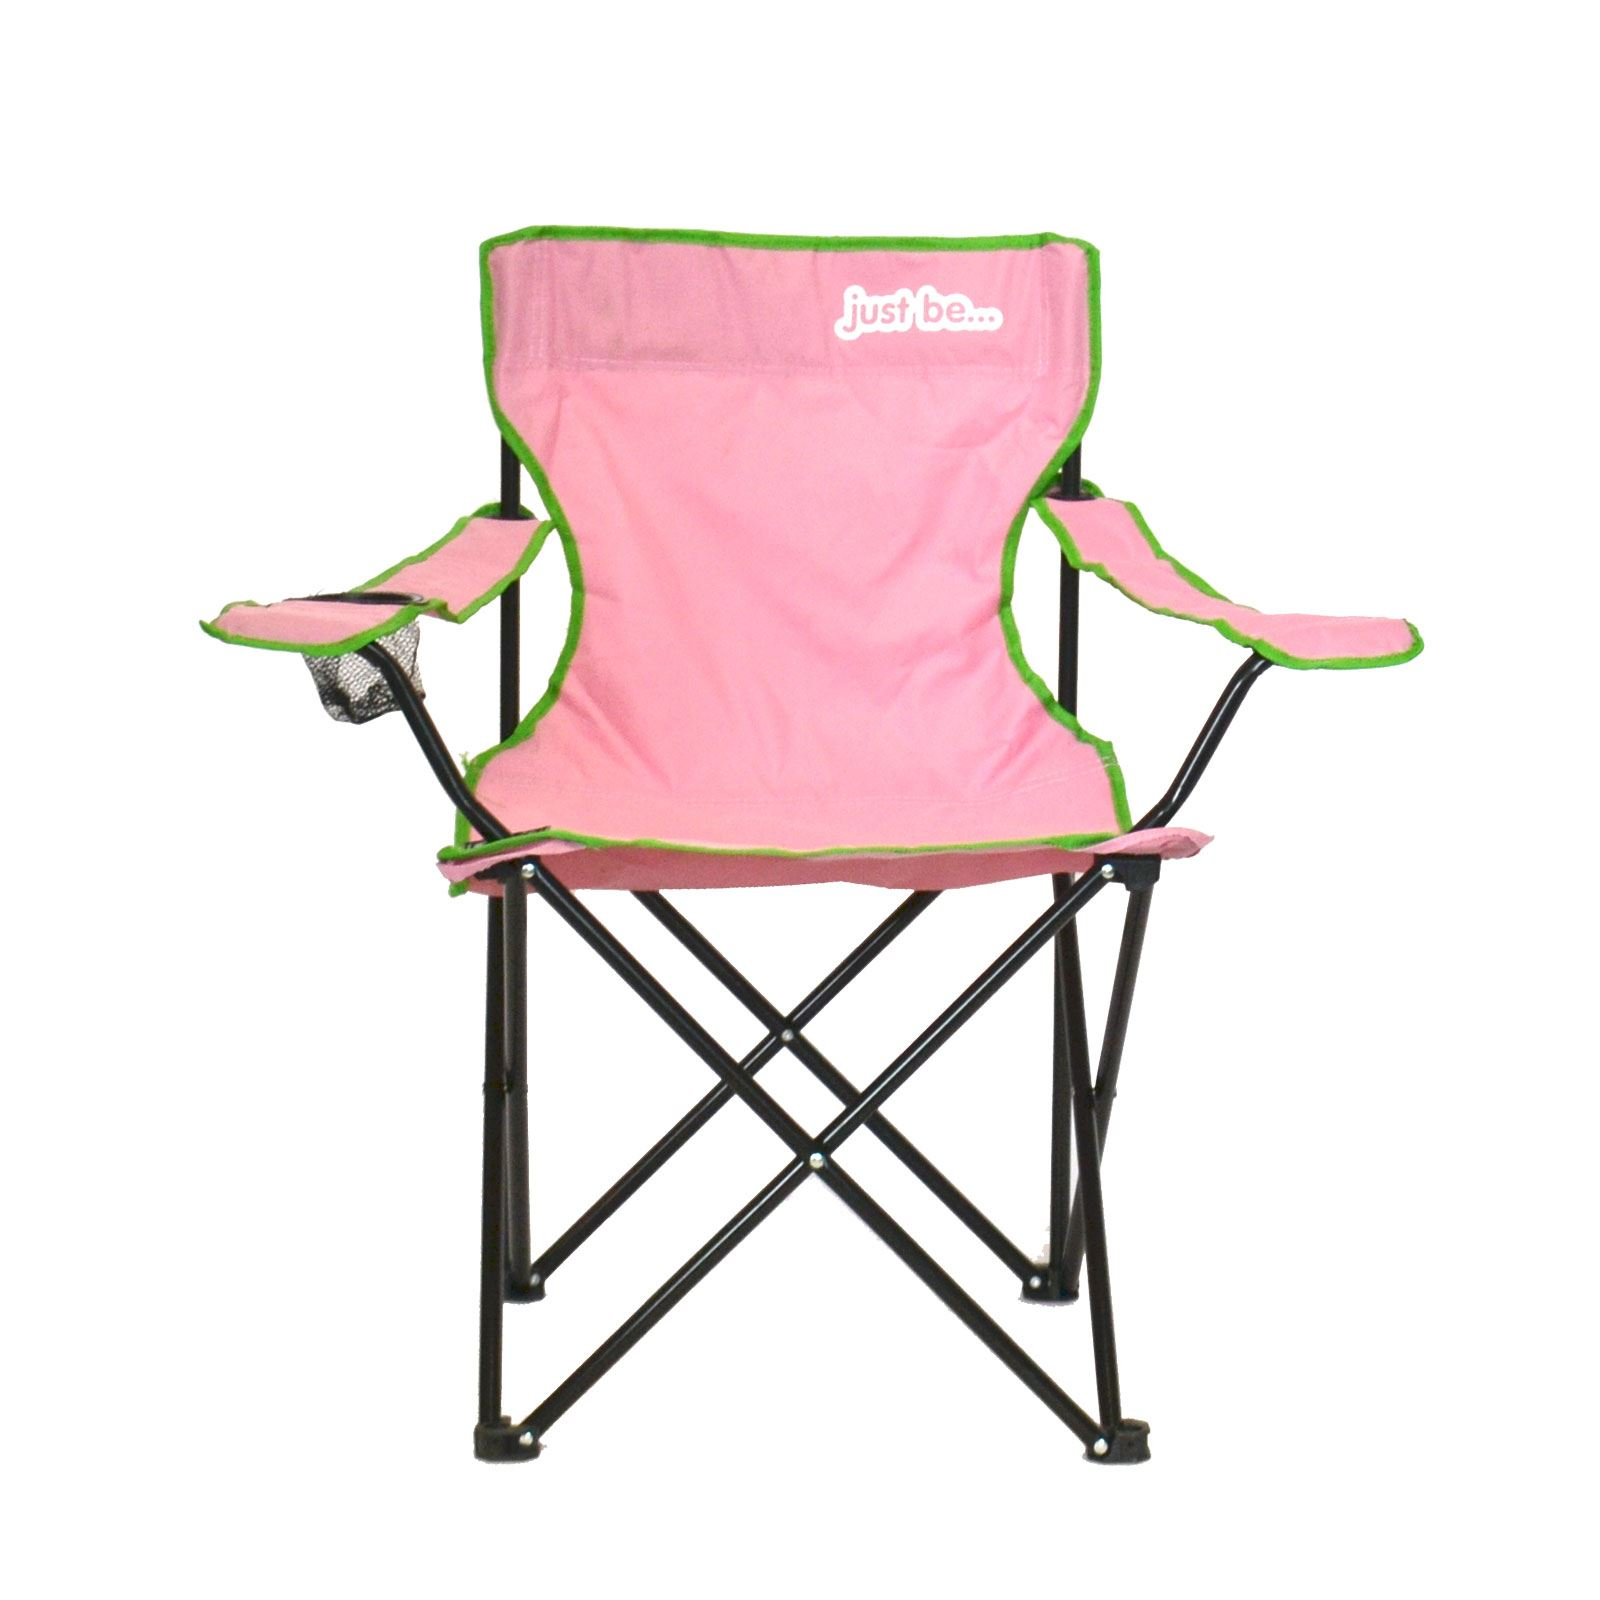 festival folding chair rolling bar stool chairs camping garden foldable fold up